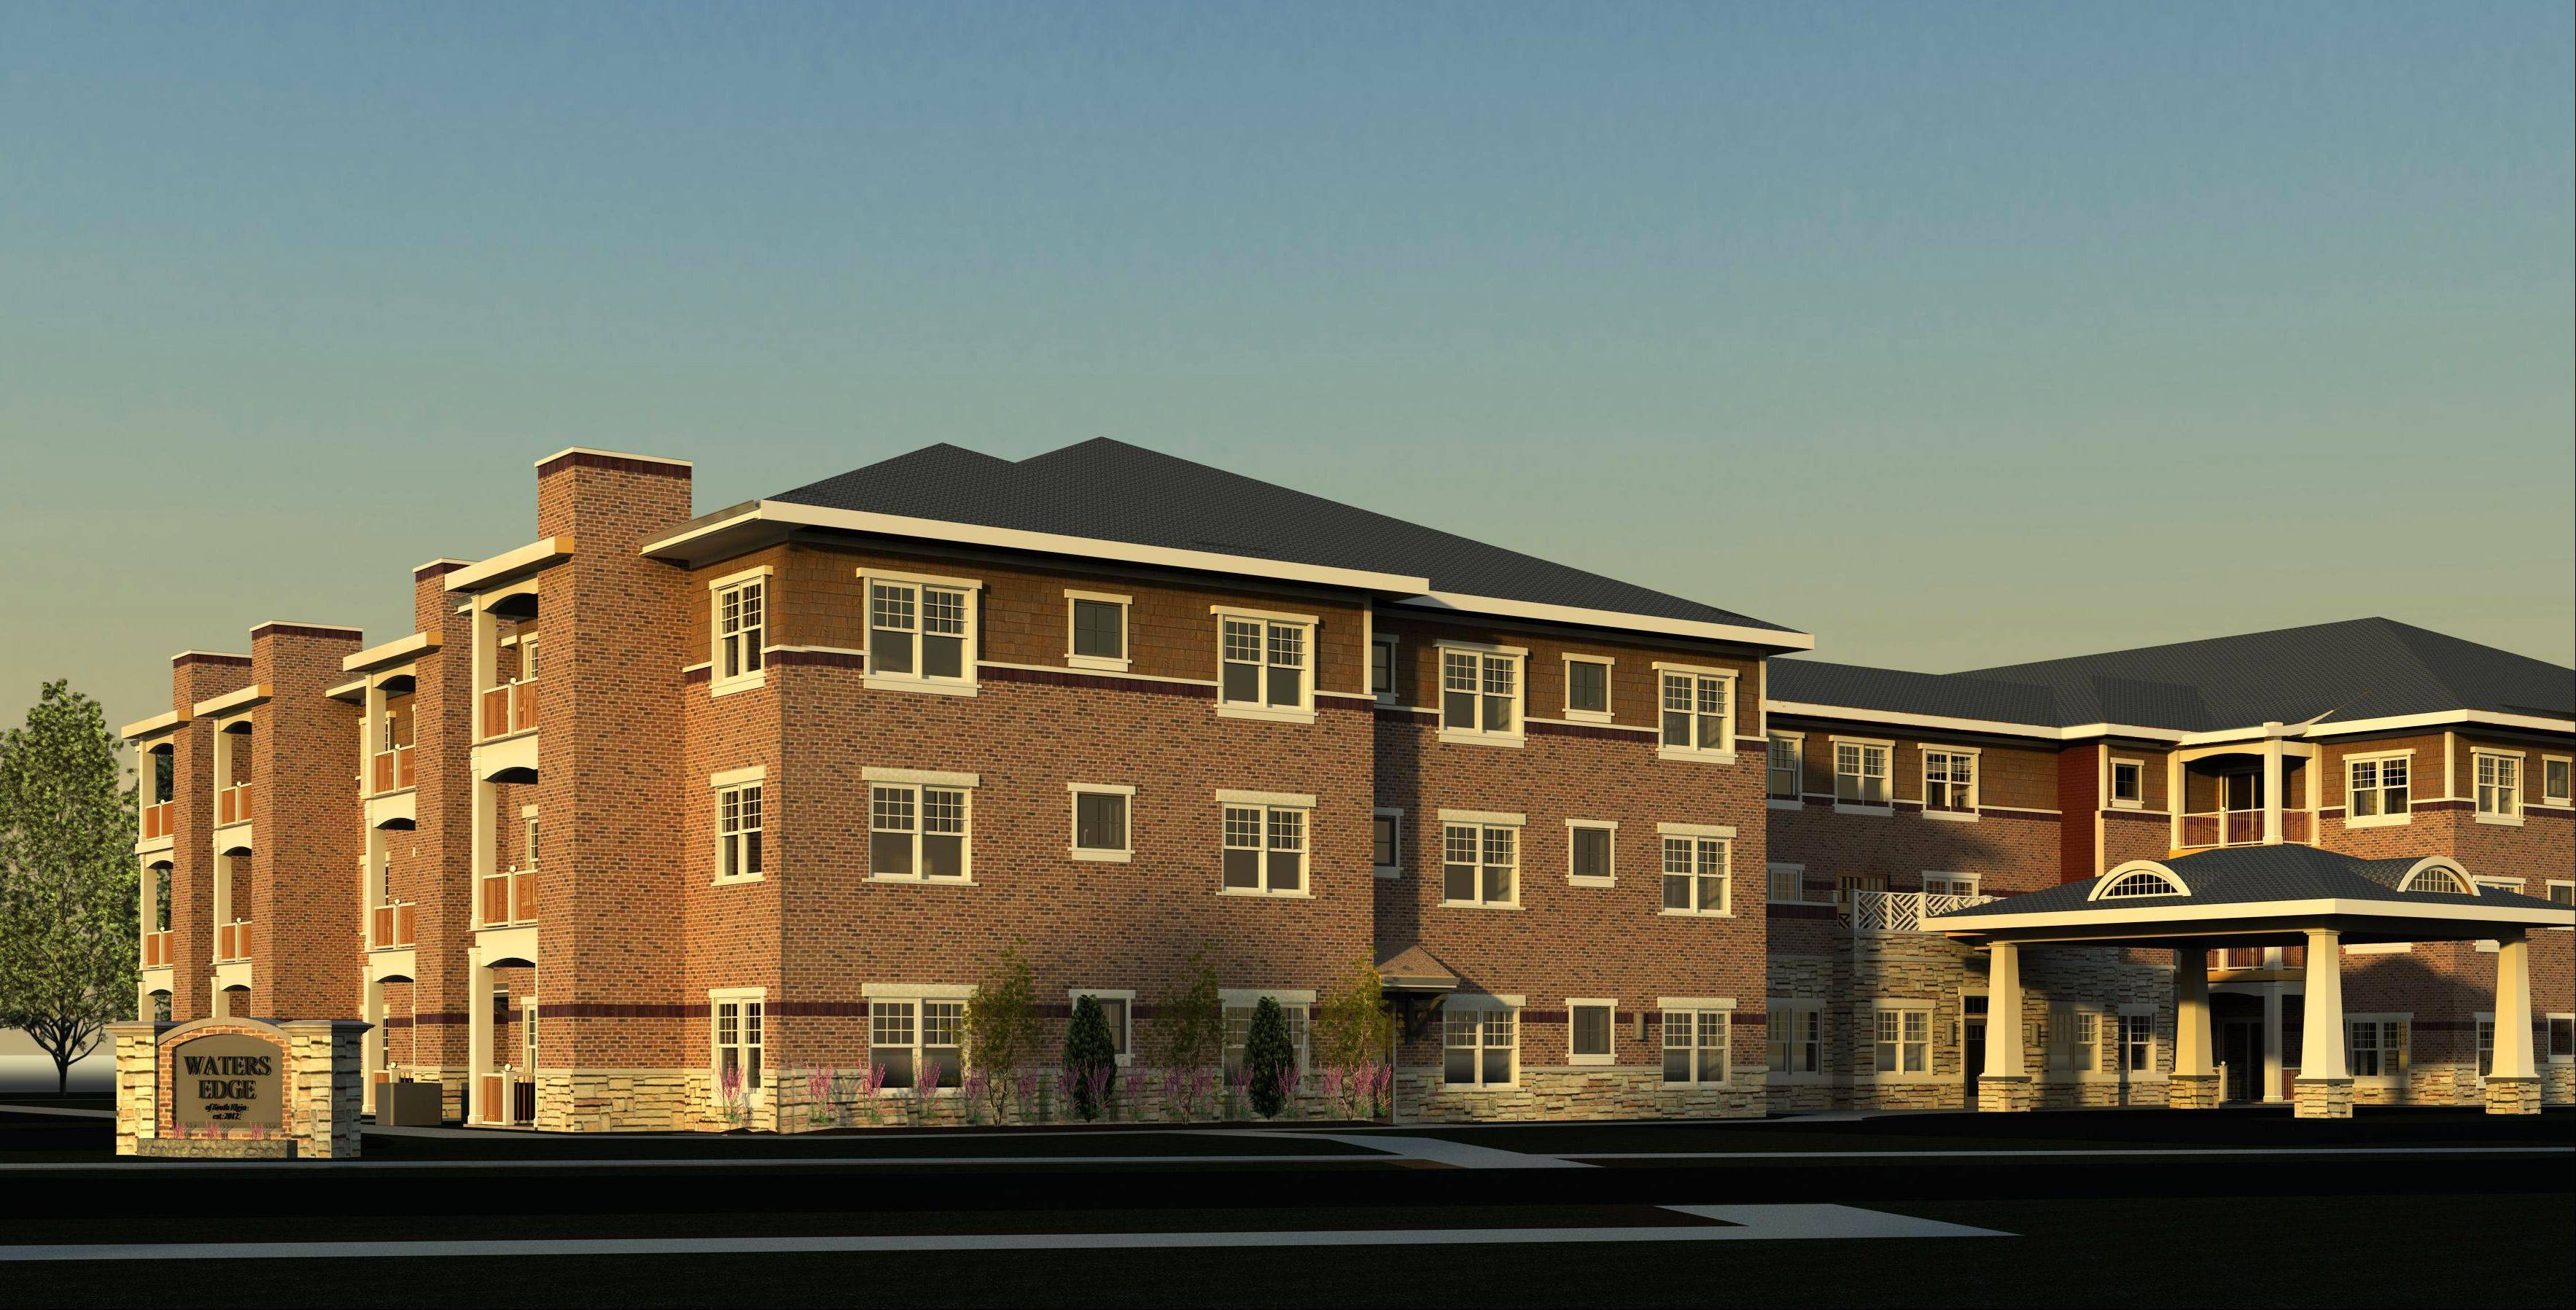 The proposed Water�s Edge of South Elgin would have 50 apartments split between low-income housing and income for people with disabilities, mental illness and special needs.